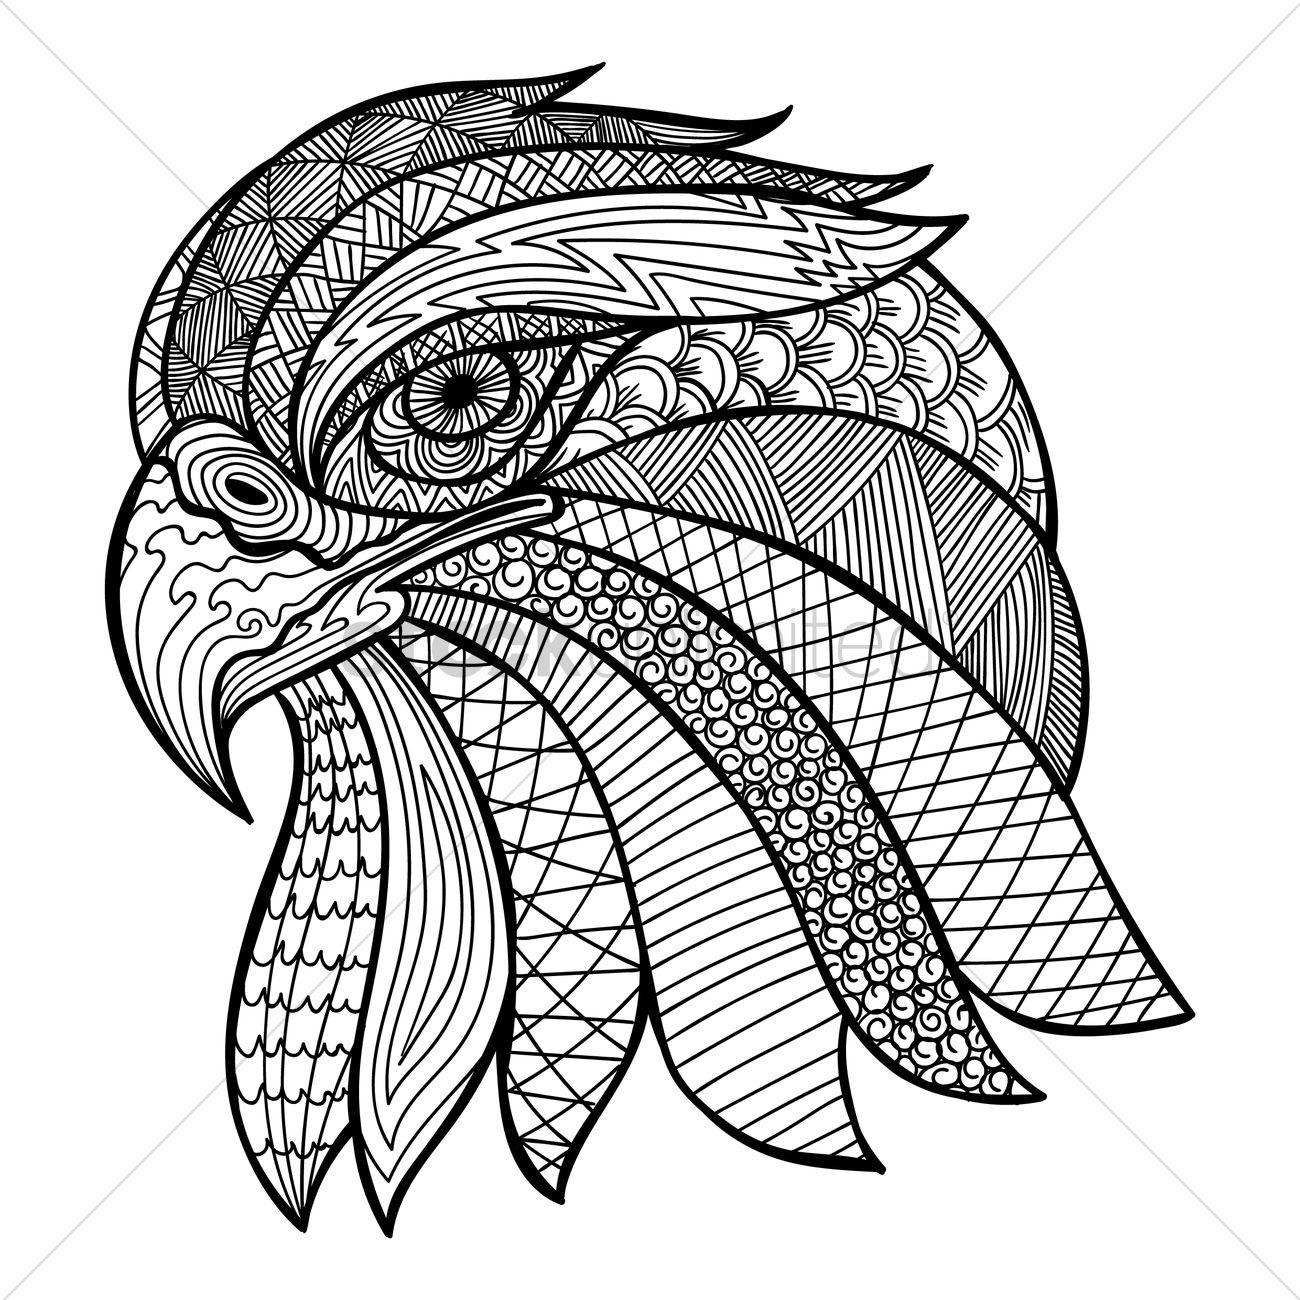 1300x1300 Intricate Eagle Design Vector Image